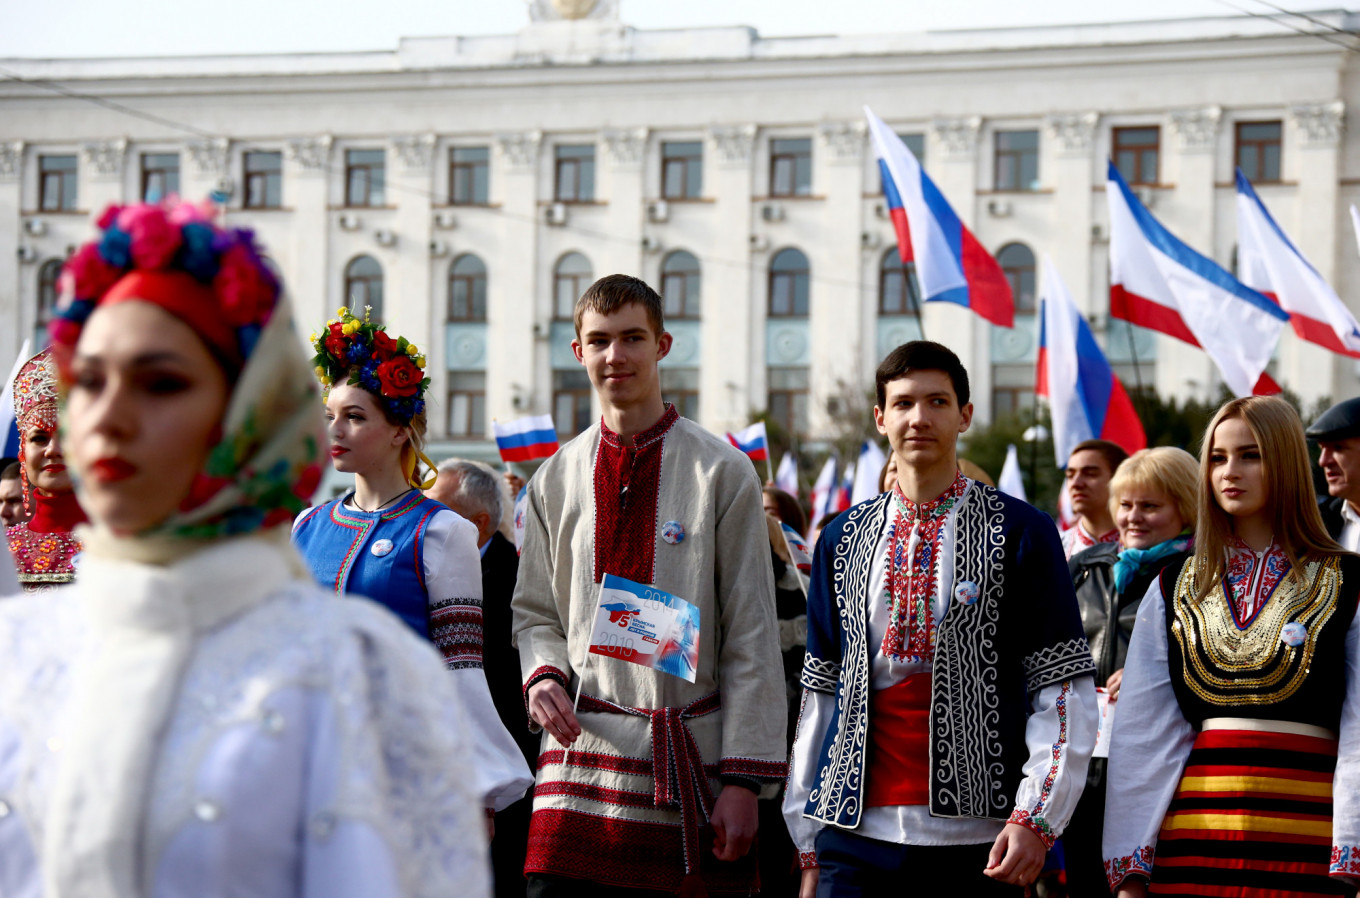 Thousands March in Crimea to Mark Fifth Anniversary of Russia's Annexation